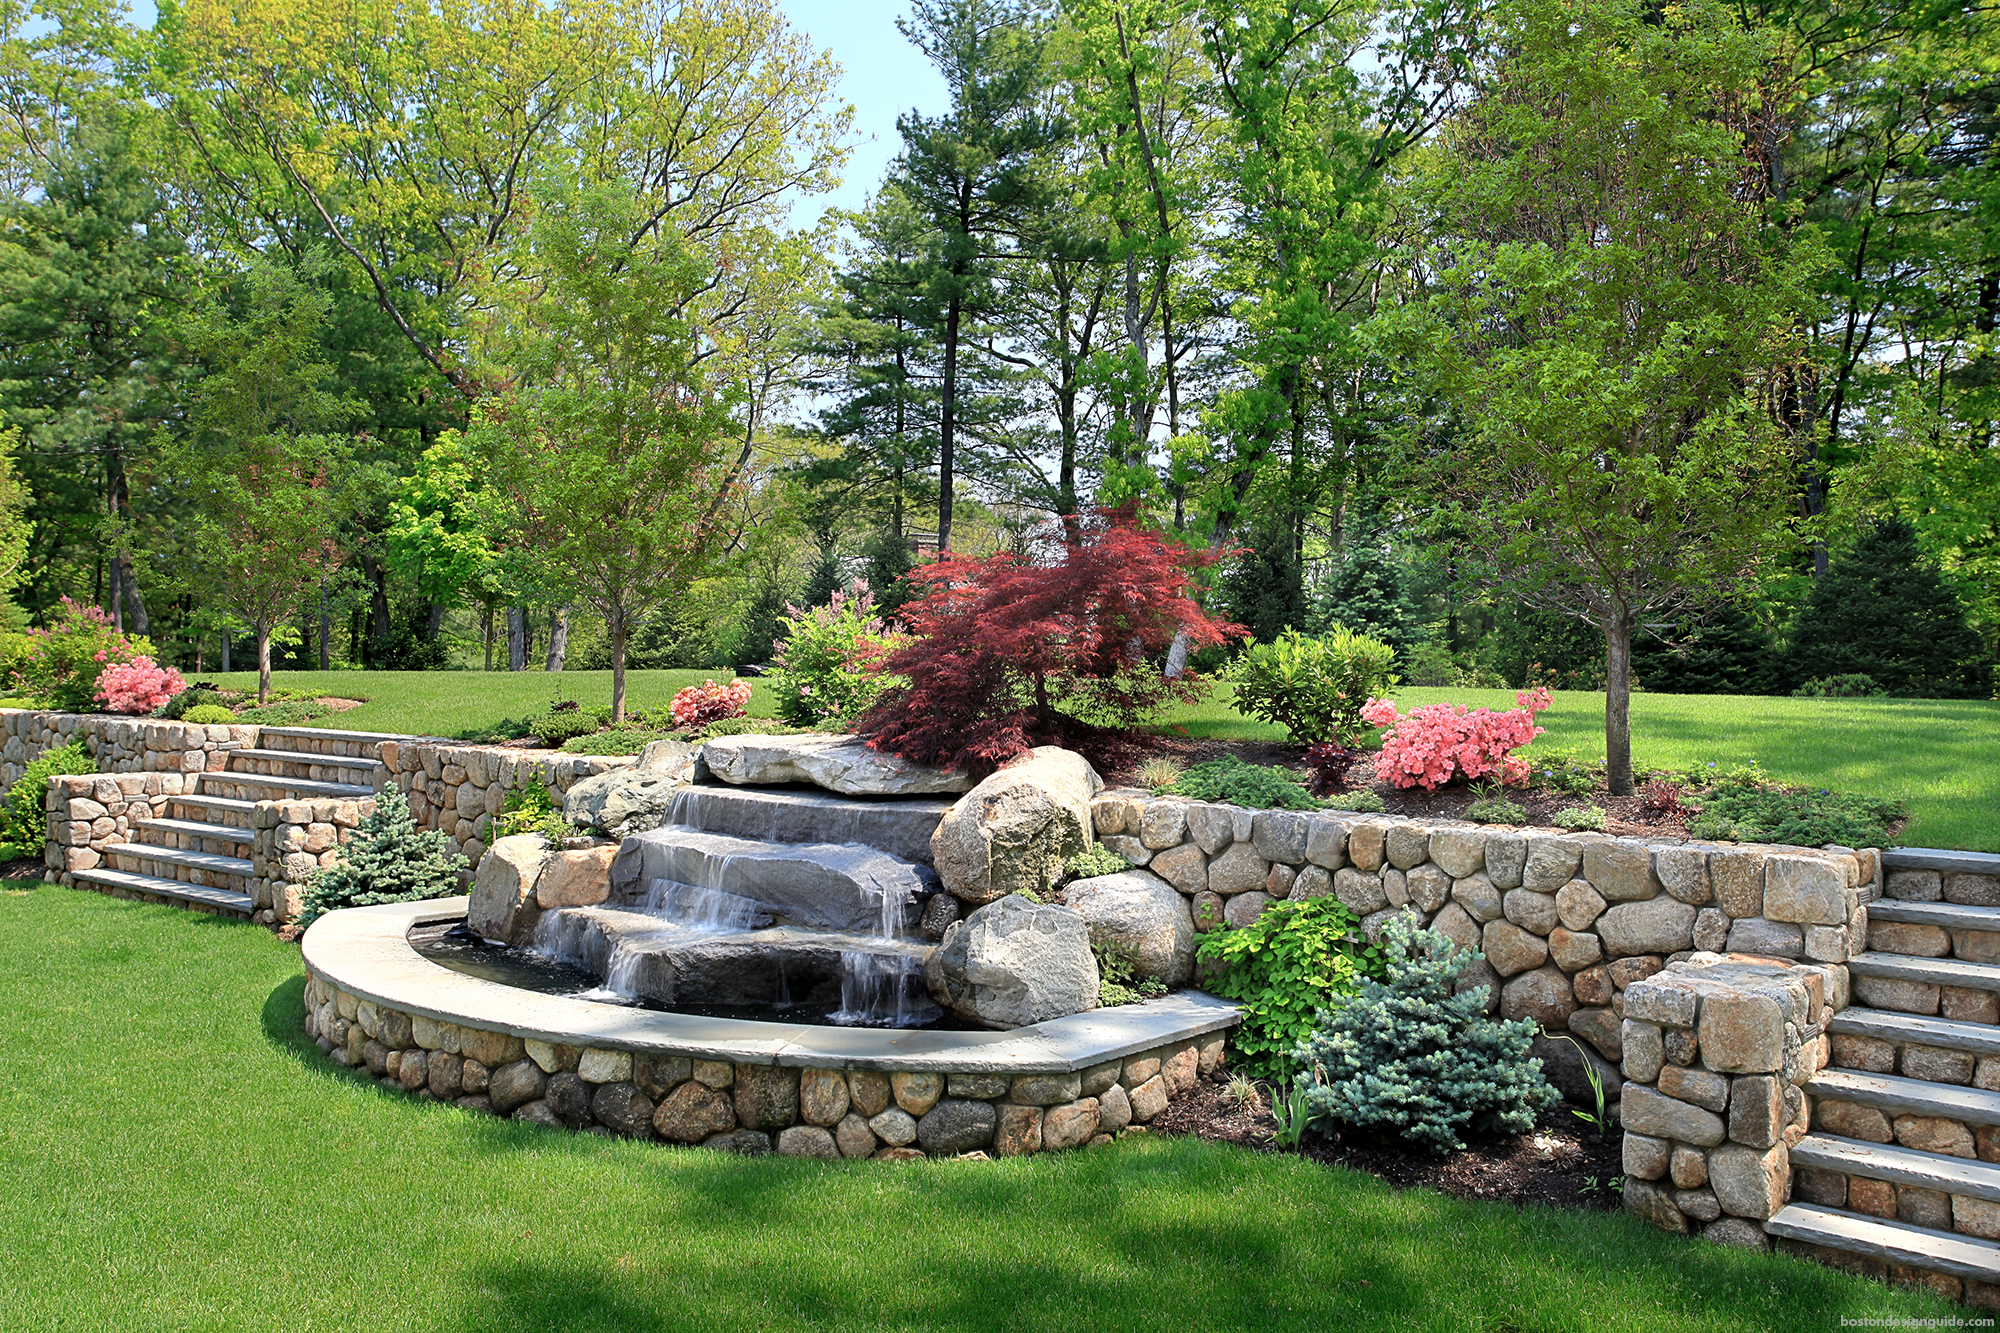 Home Landscape Architecture and design services